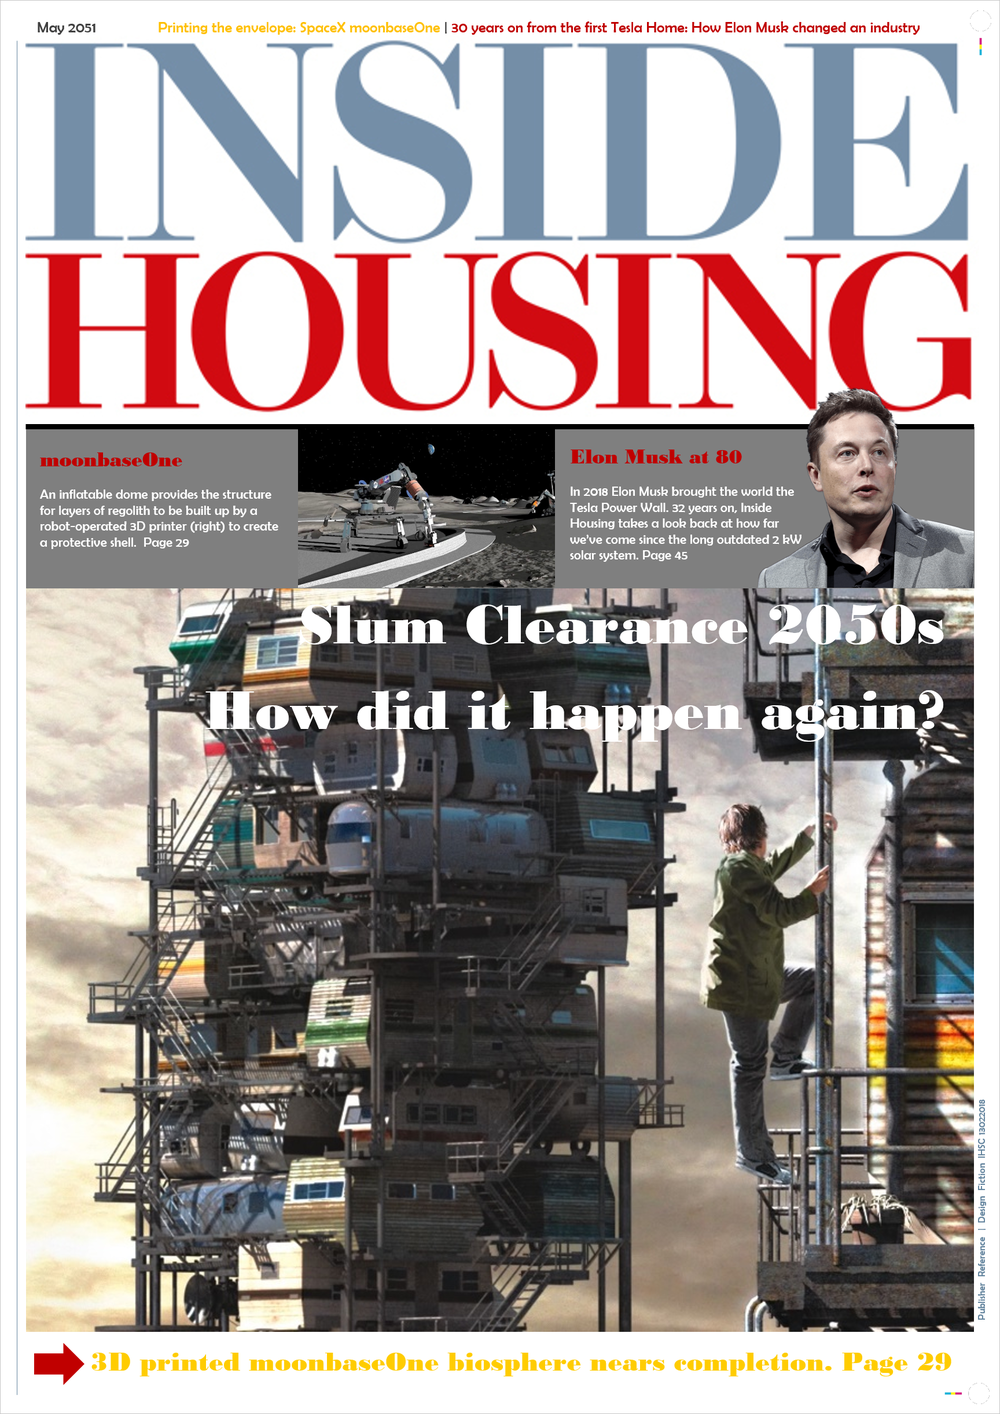 InsideHousing_FrontPage_2051.png